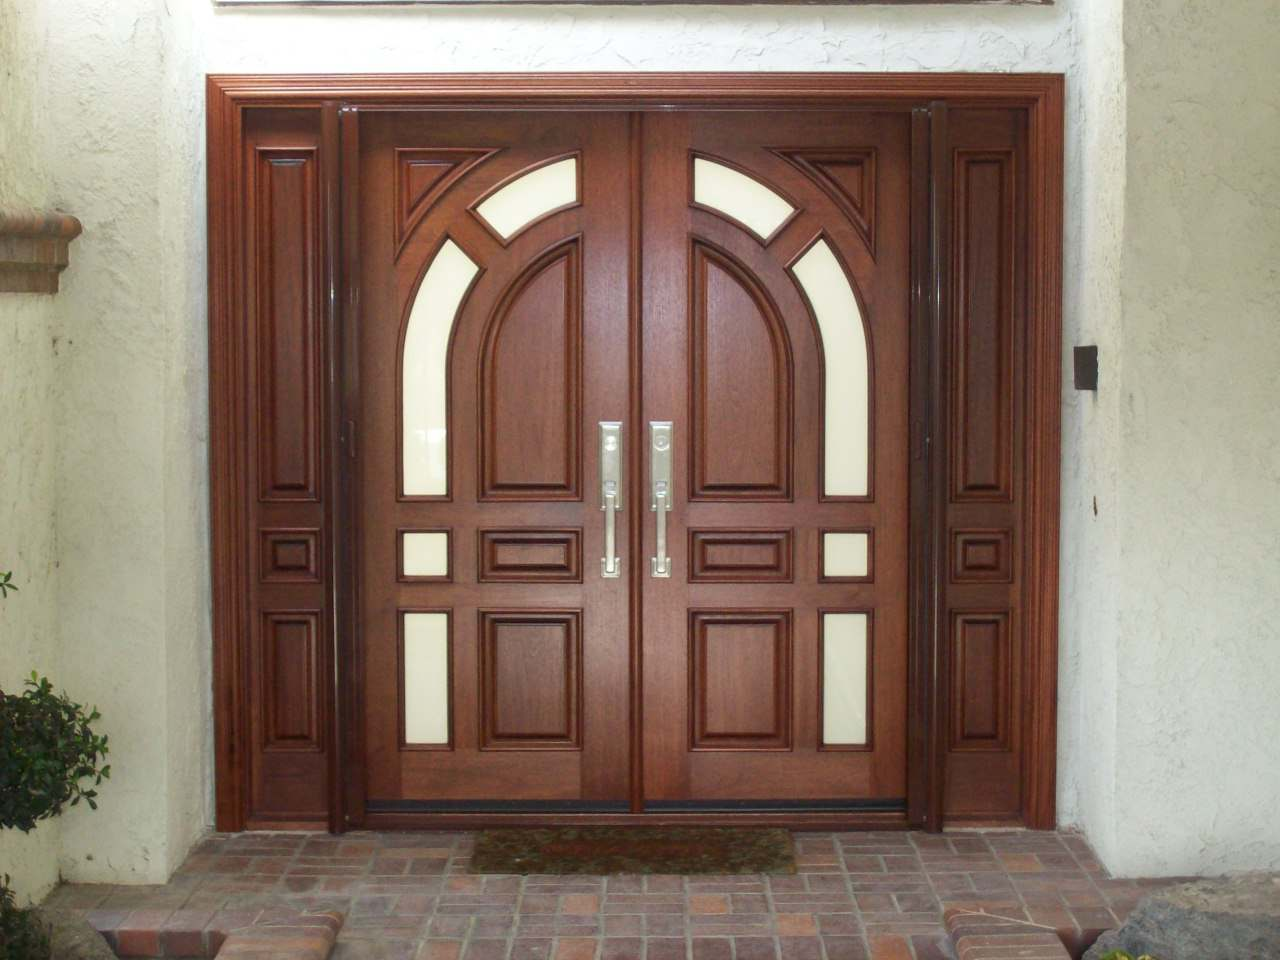 Elegant Mahogany and Glass Arch Double Front Door Home Design photo - 8